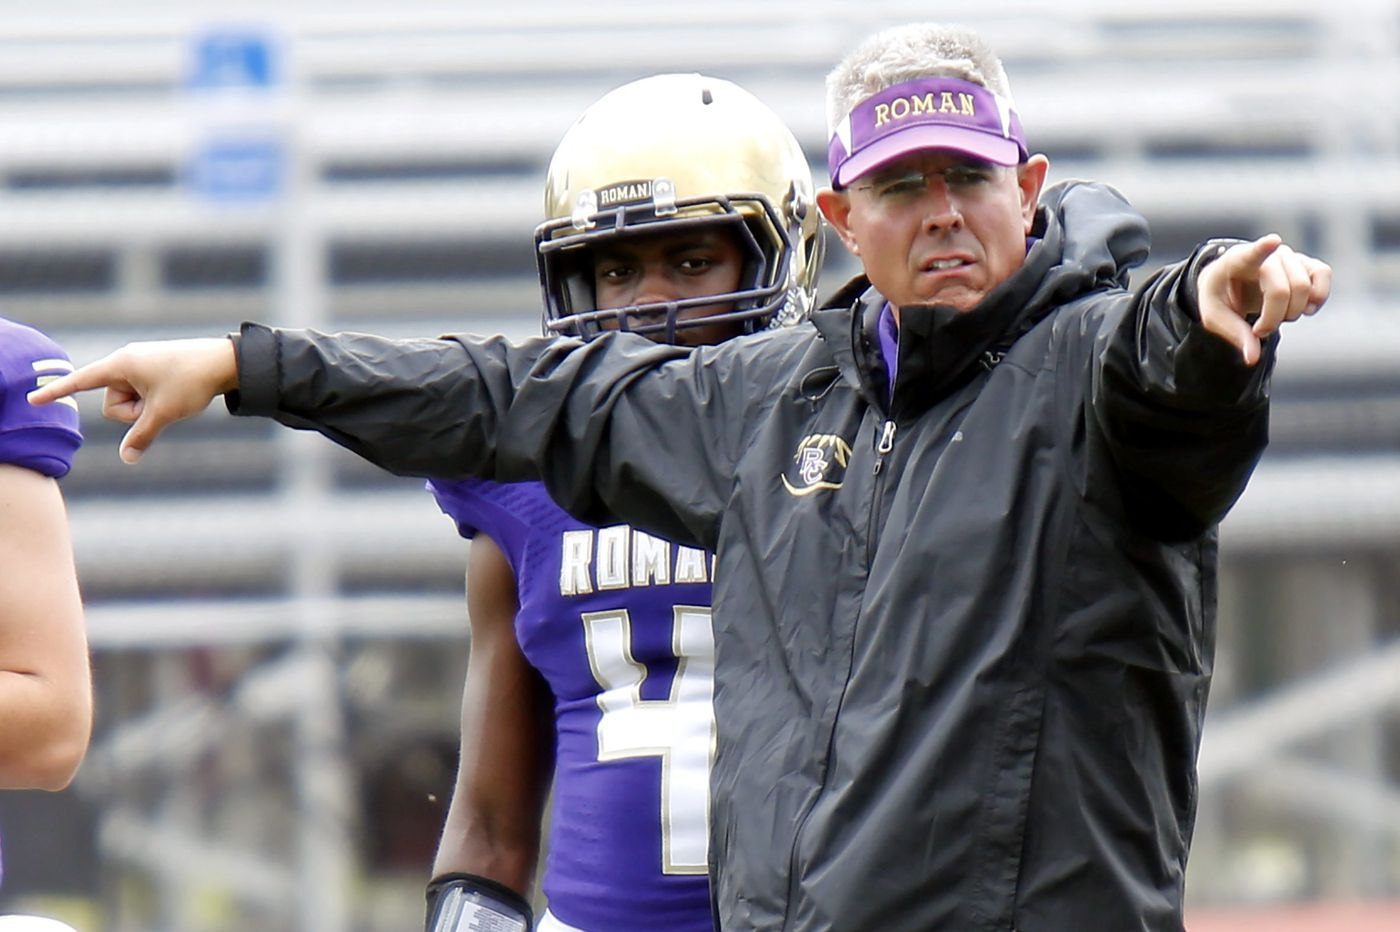 Jim Murphy steps down as Roman Catholic football coach